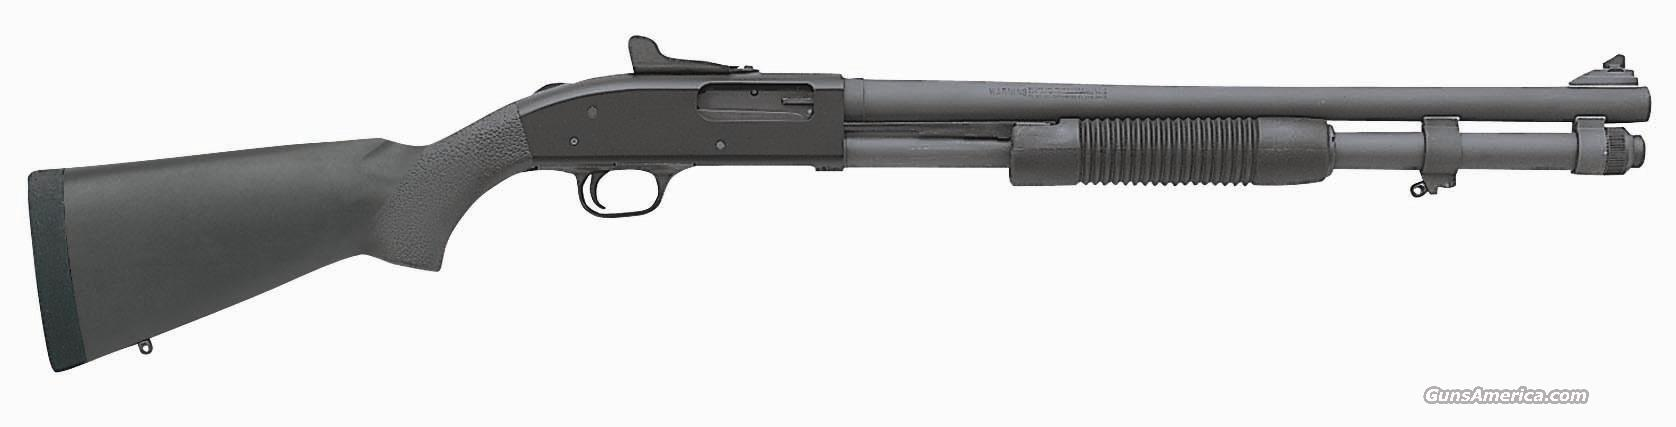 Mossberg 590A1 Used  Guns > Shotguns > Mossberg Shotguns > Pump > Tactical